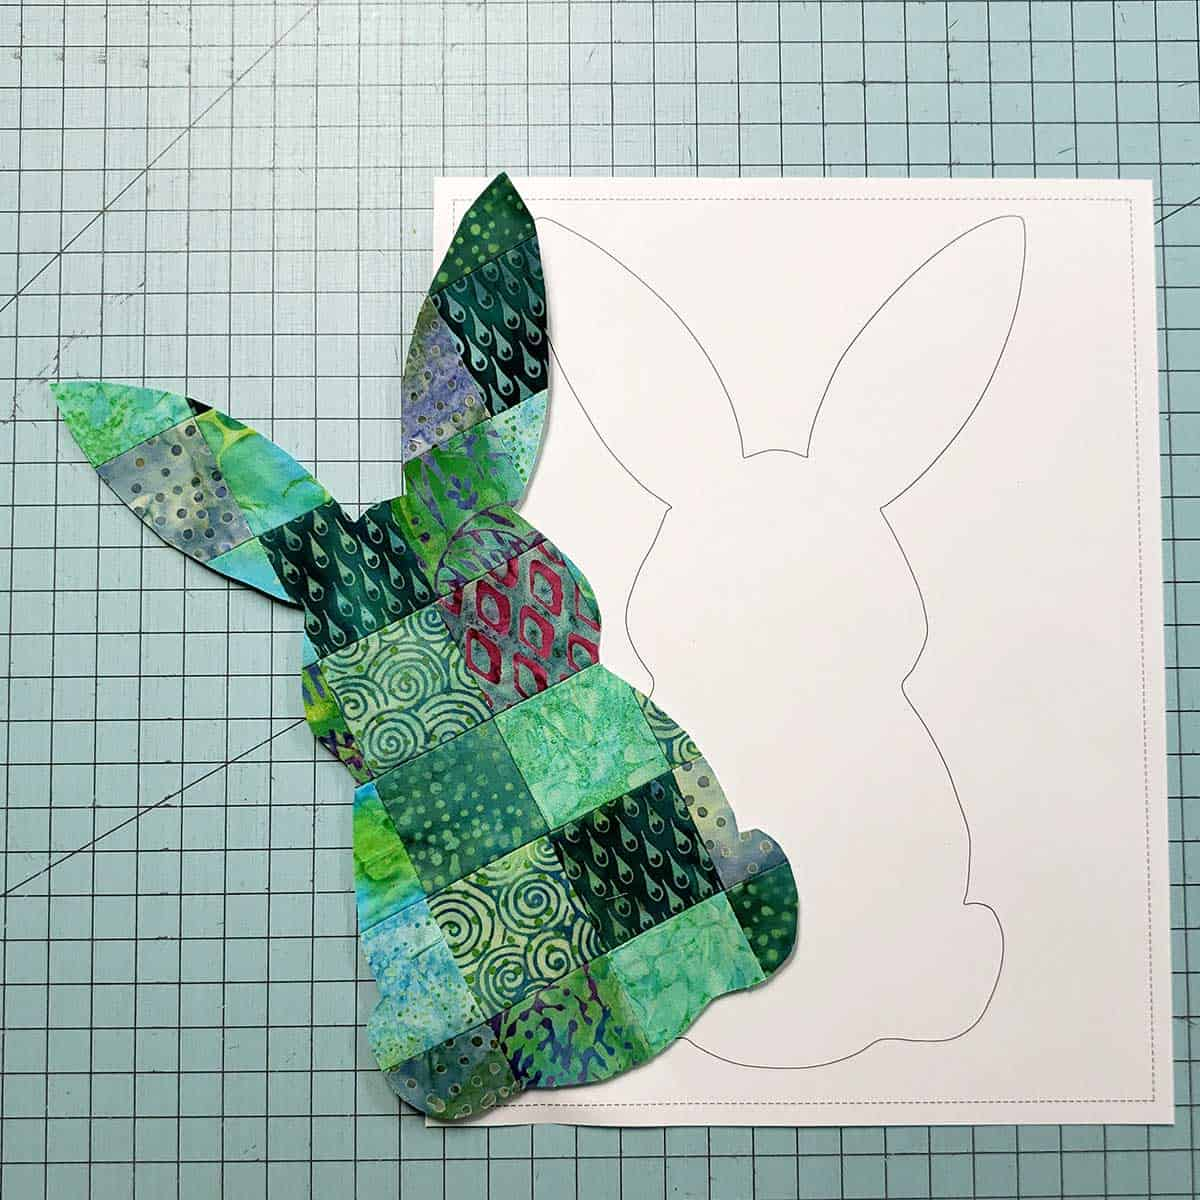 Patchwork squares used for applique